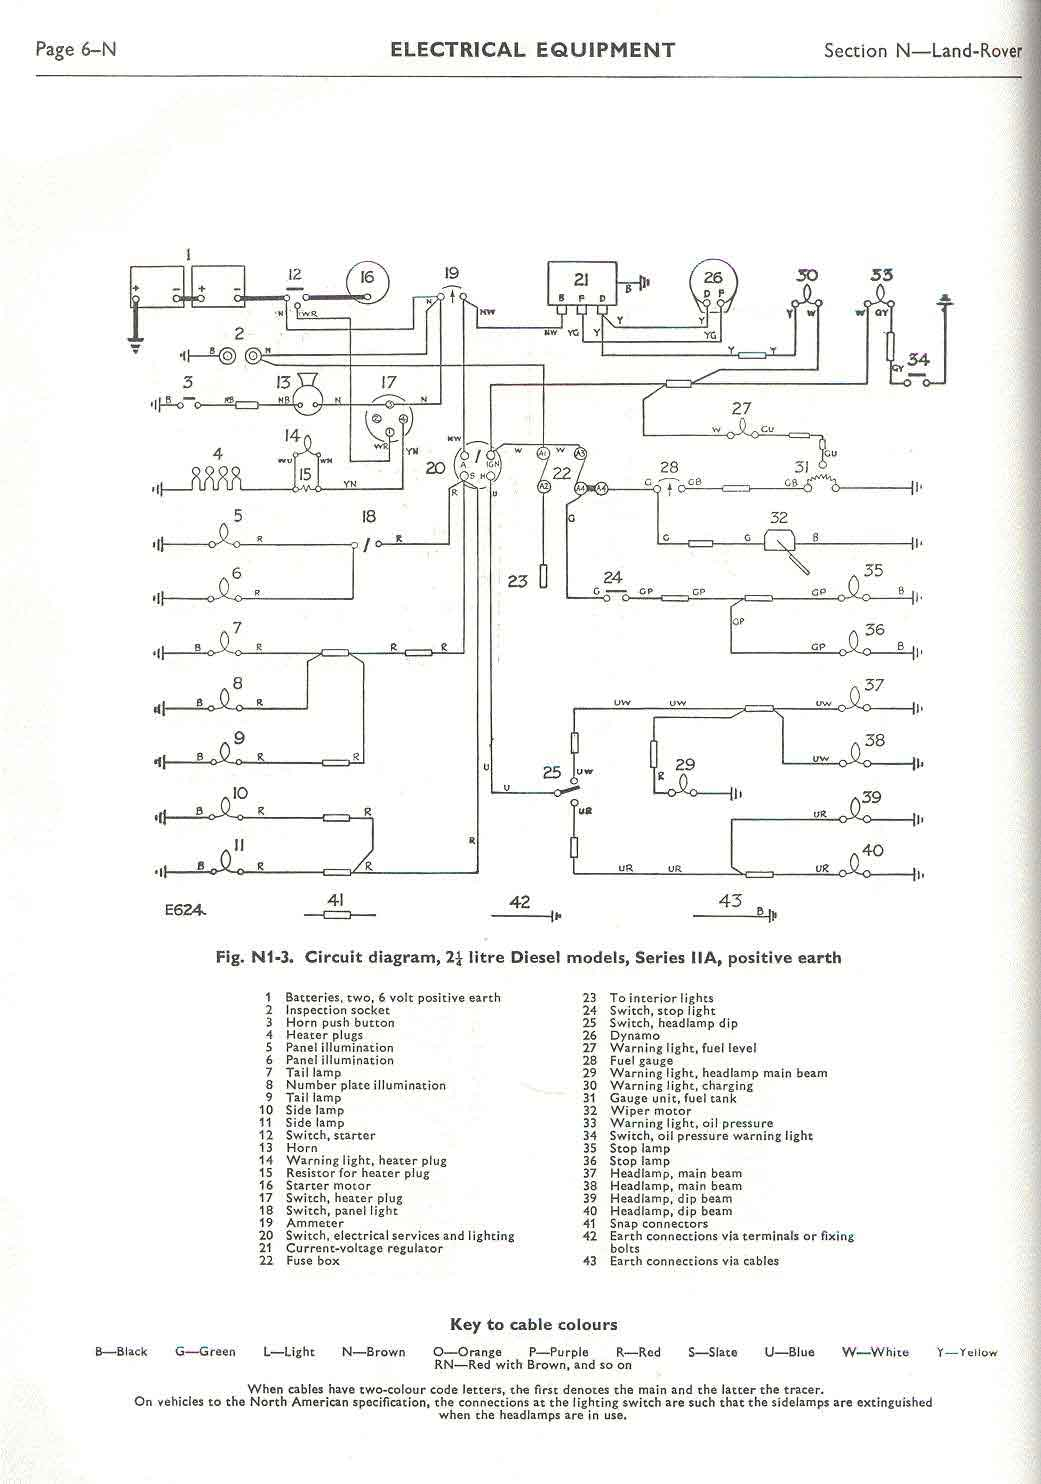 land rover faq repair maintenance series electrical rh lrfaq org land rover wiring diagram series land rover wiring diagram series